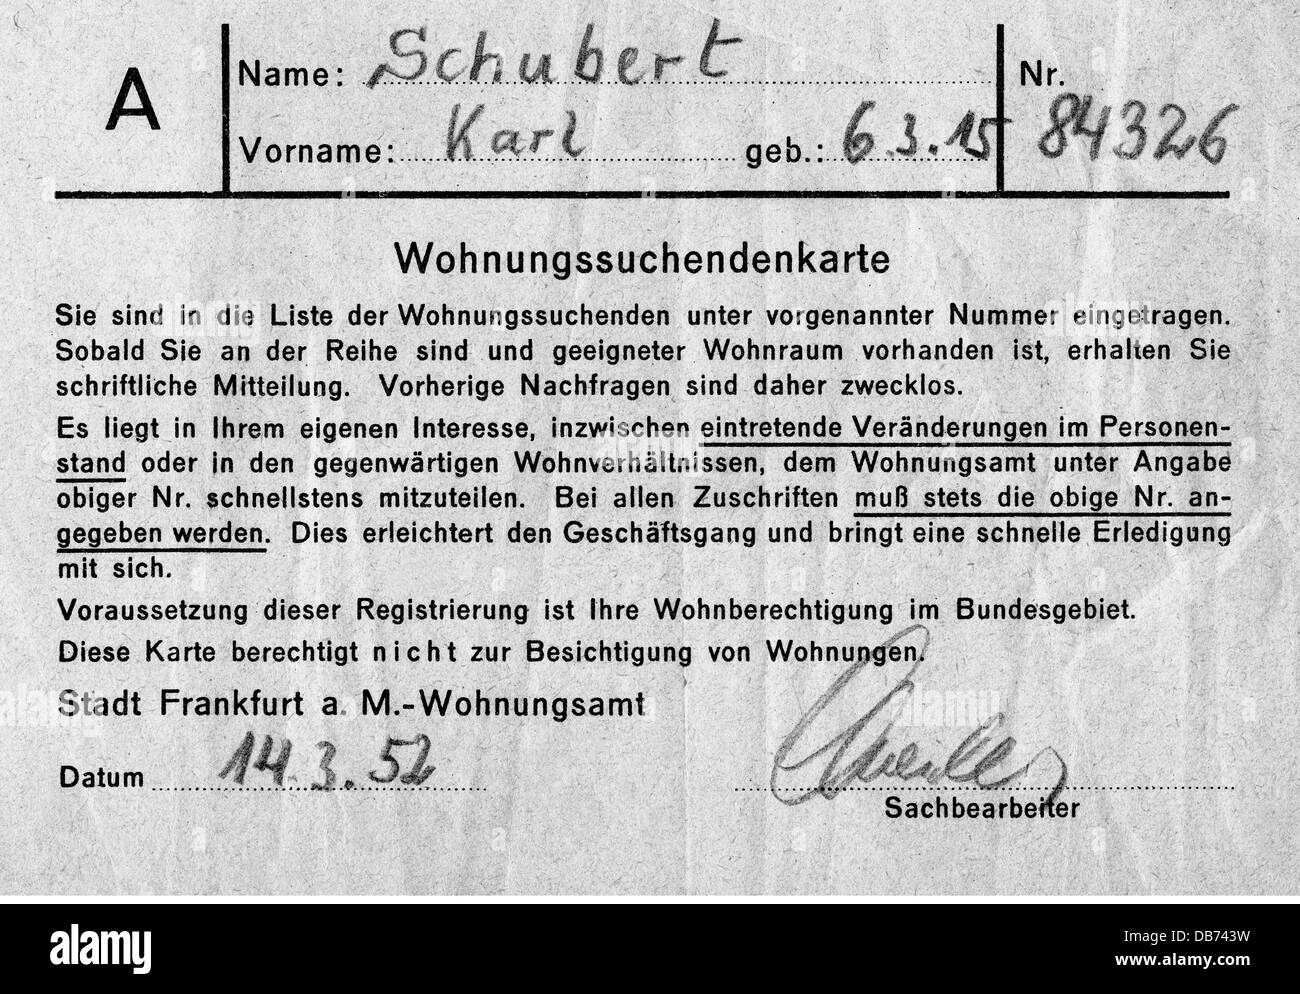 post war period, misery and hardship, Germany, housing shortage, accommodation search card of Karl Schubert, housing - Stock Image